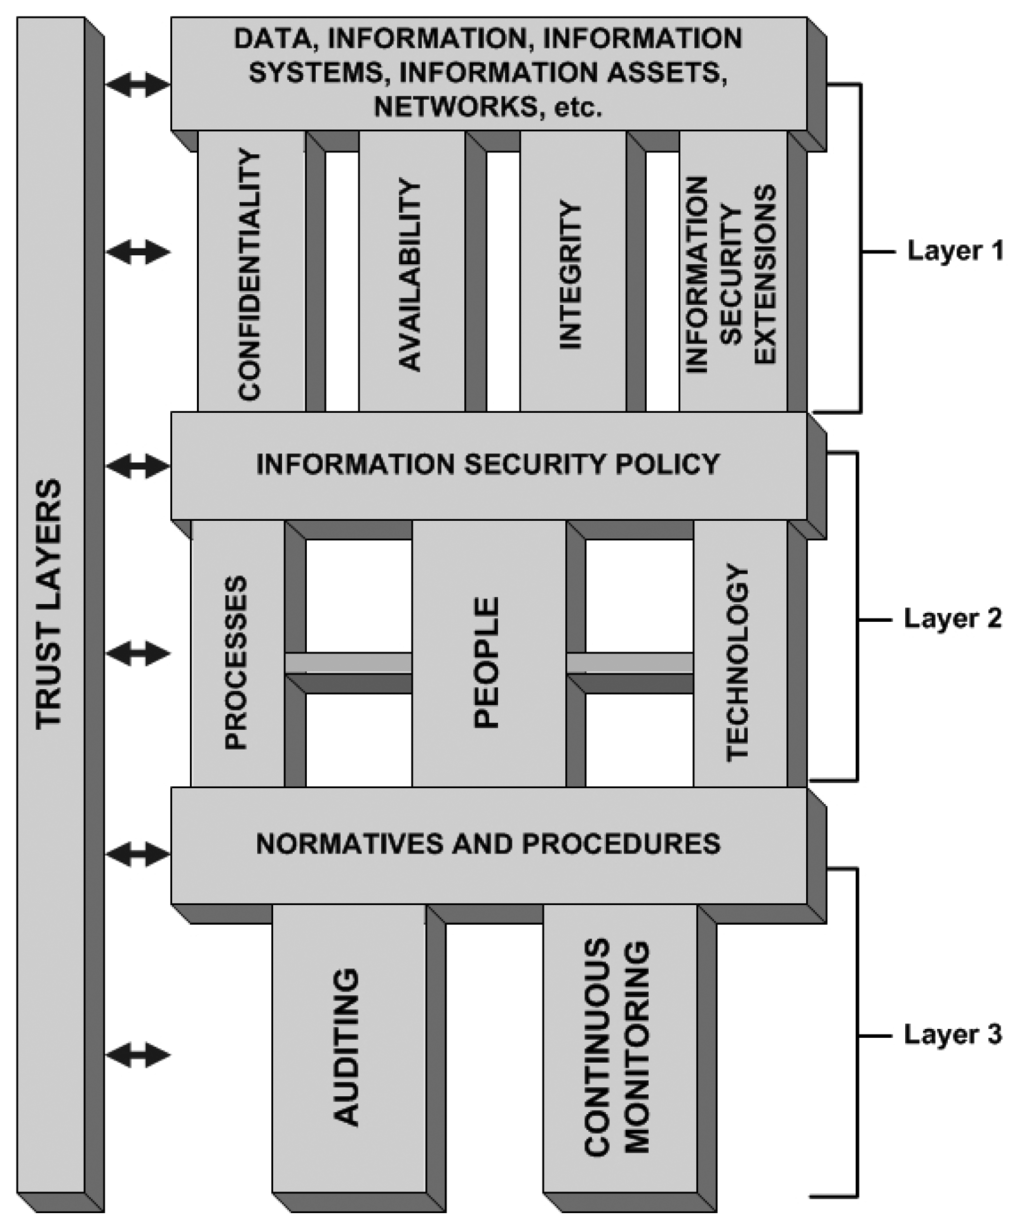 Sensors | Free Full-Text | A Layered Trust Information Security ...